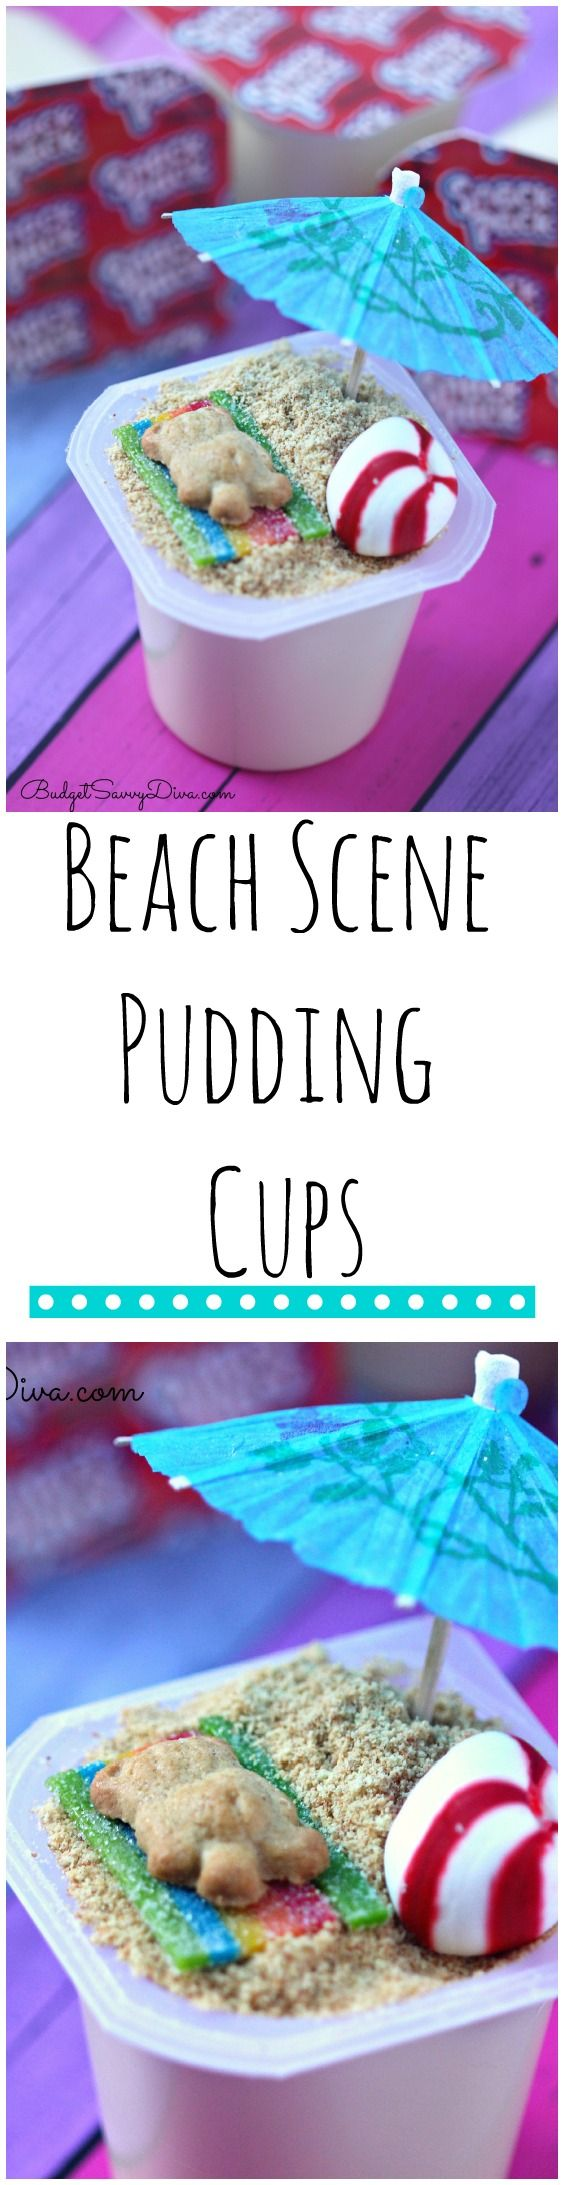 Recipe air Cups jordan carmine   size Beach Scene Pudding